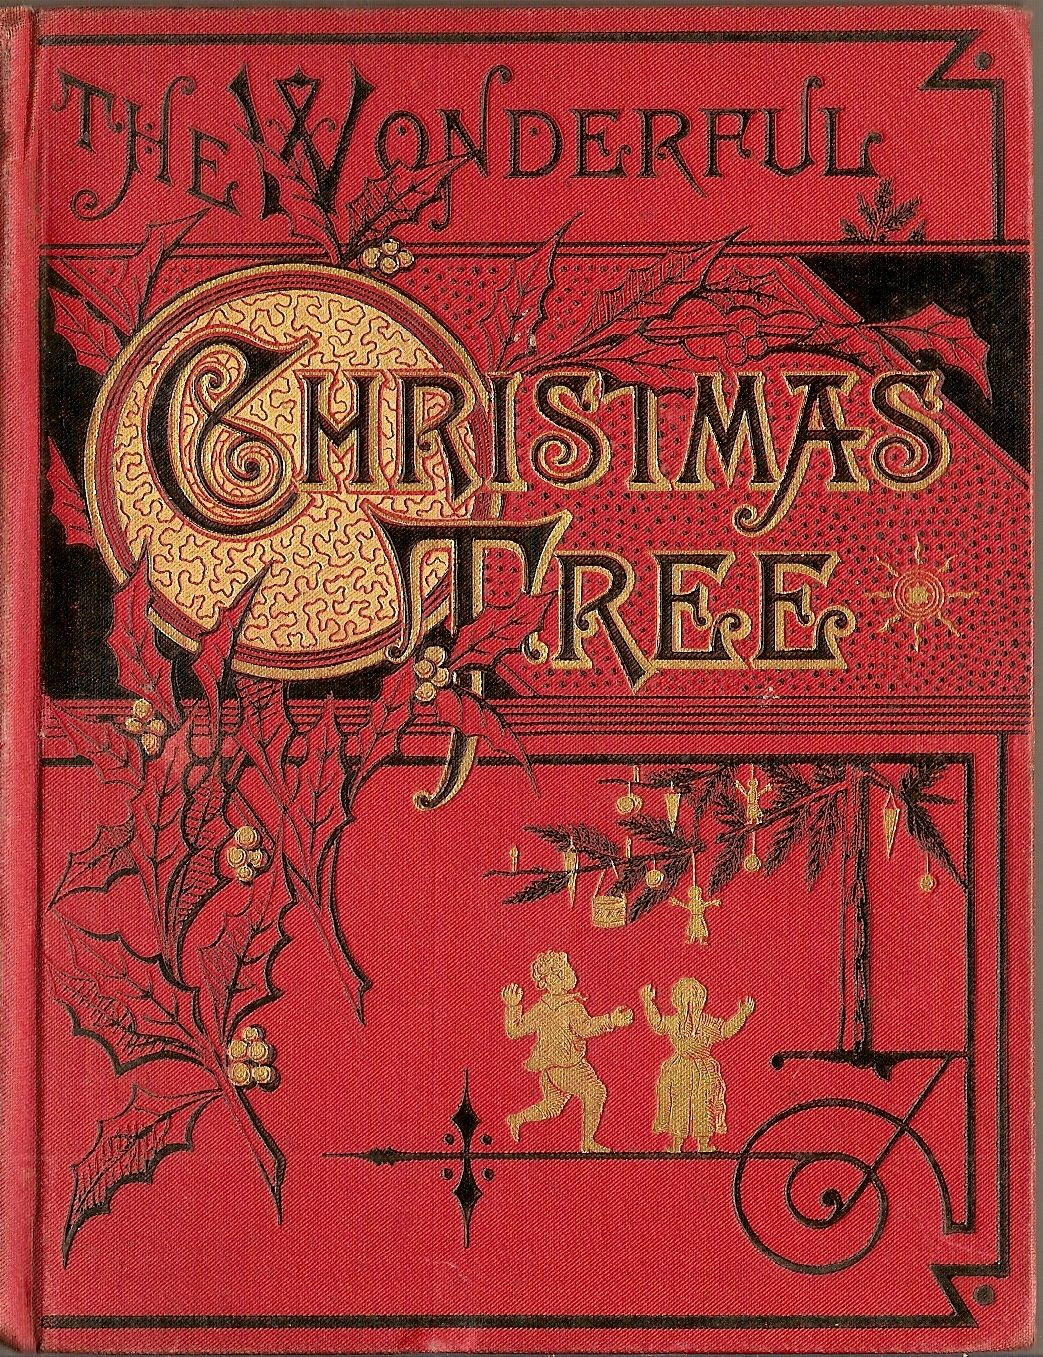 The Wonderful Christmas Tree I Just Love The Graphics On This Cover Christmas Books Antique Books Book Cover Art